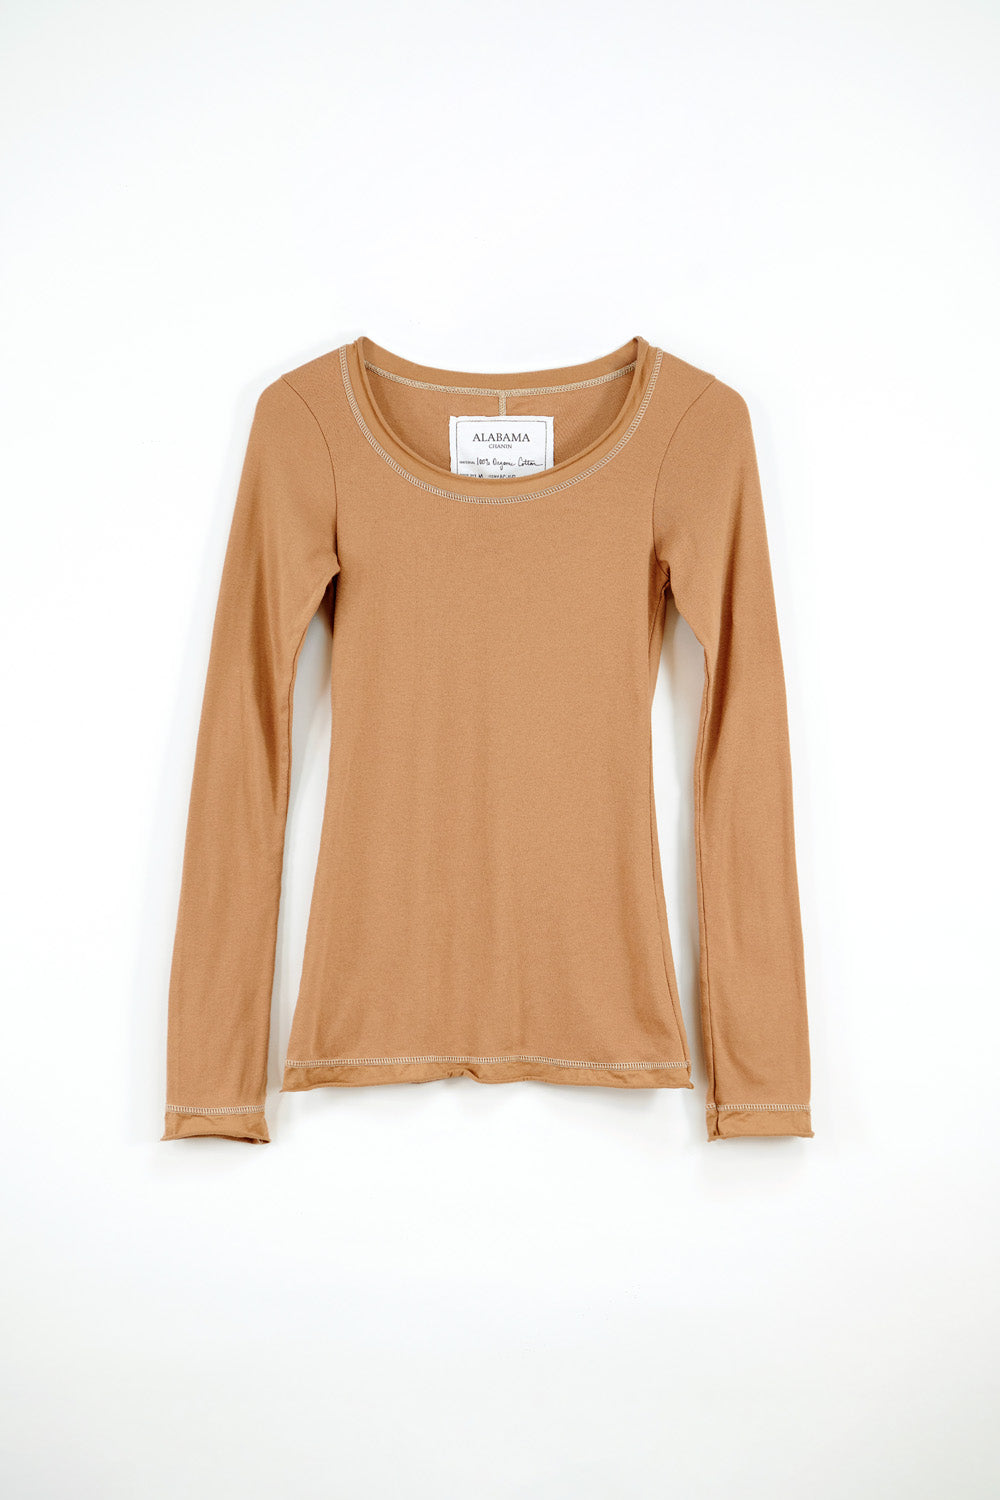 Alabama Chanin The Essential Rib Top Organic Cotton Rib Top with Long Sleeves in Camel